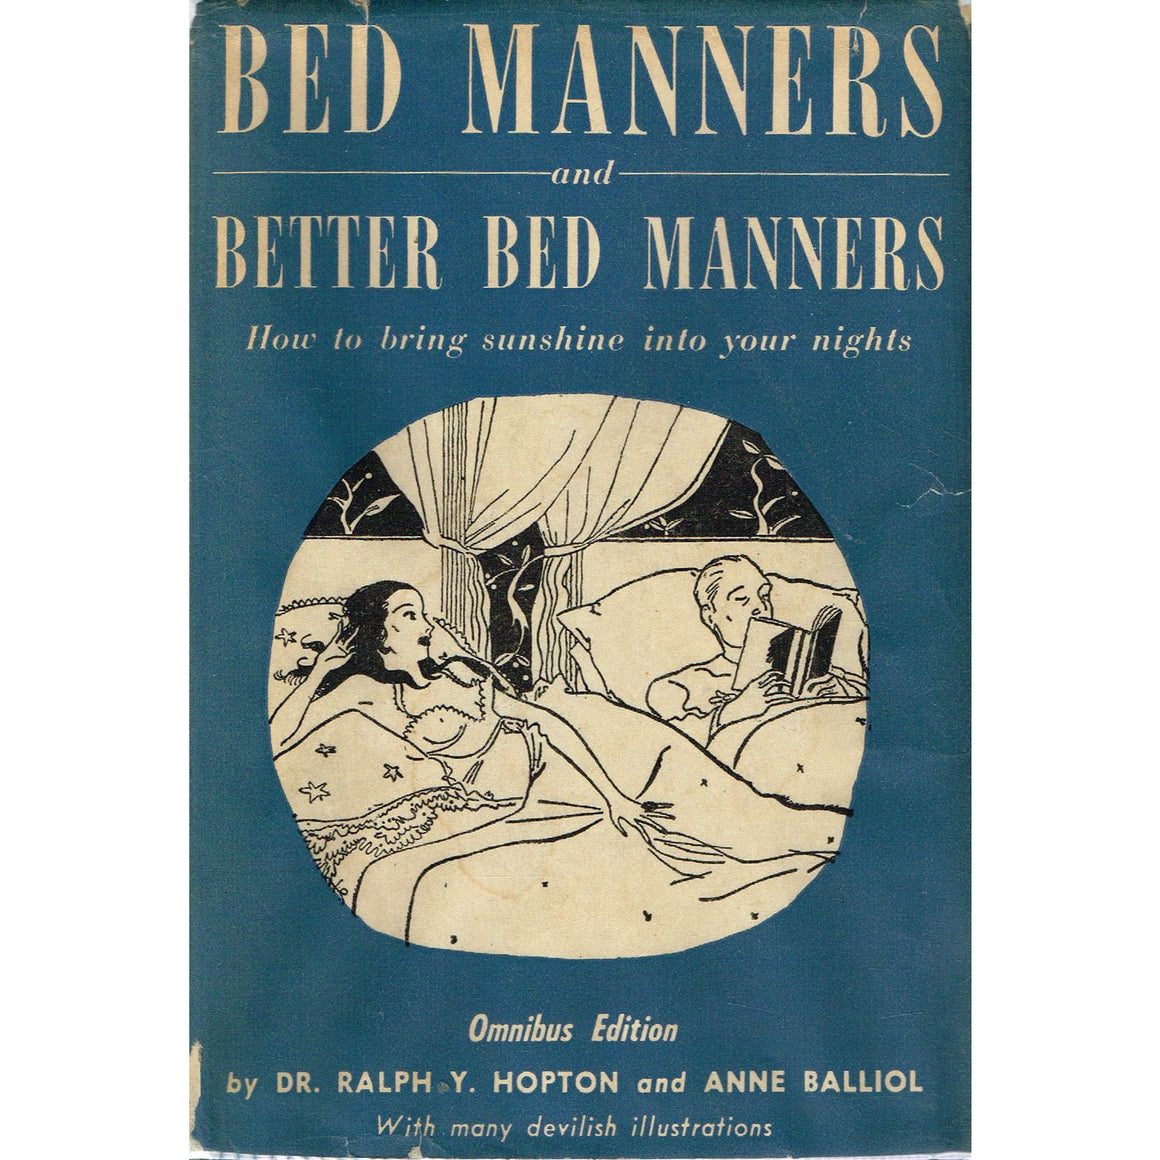 Bed Manners and Better Bed Manners